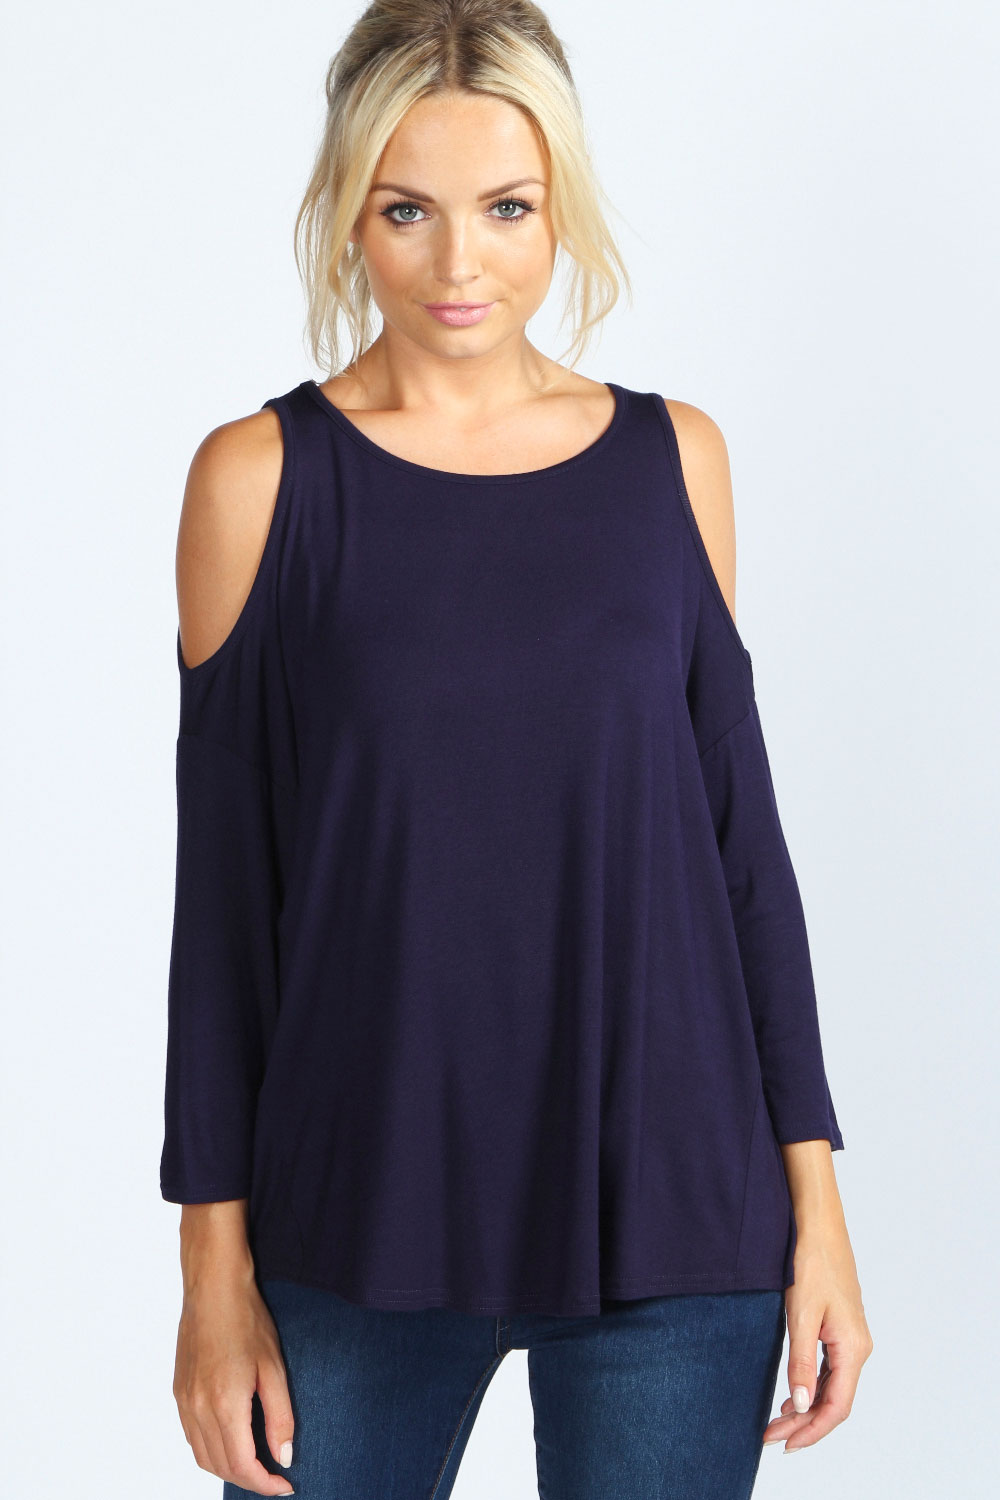 Boohoo-Womens-Ladies-Charlotte-Cut-Out-Shoulder-Top